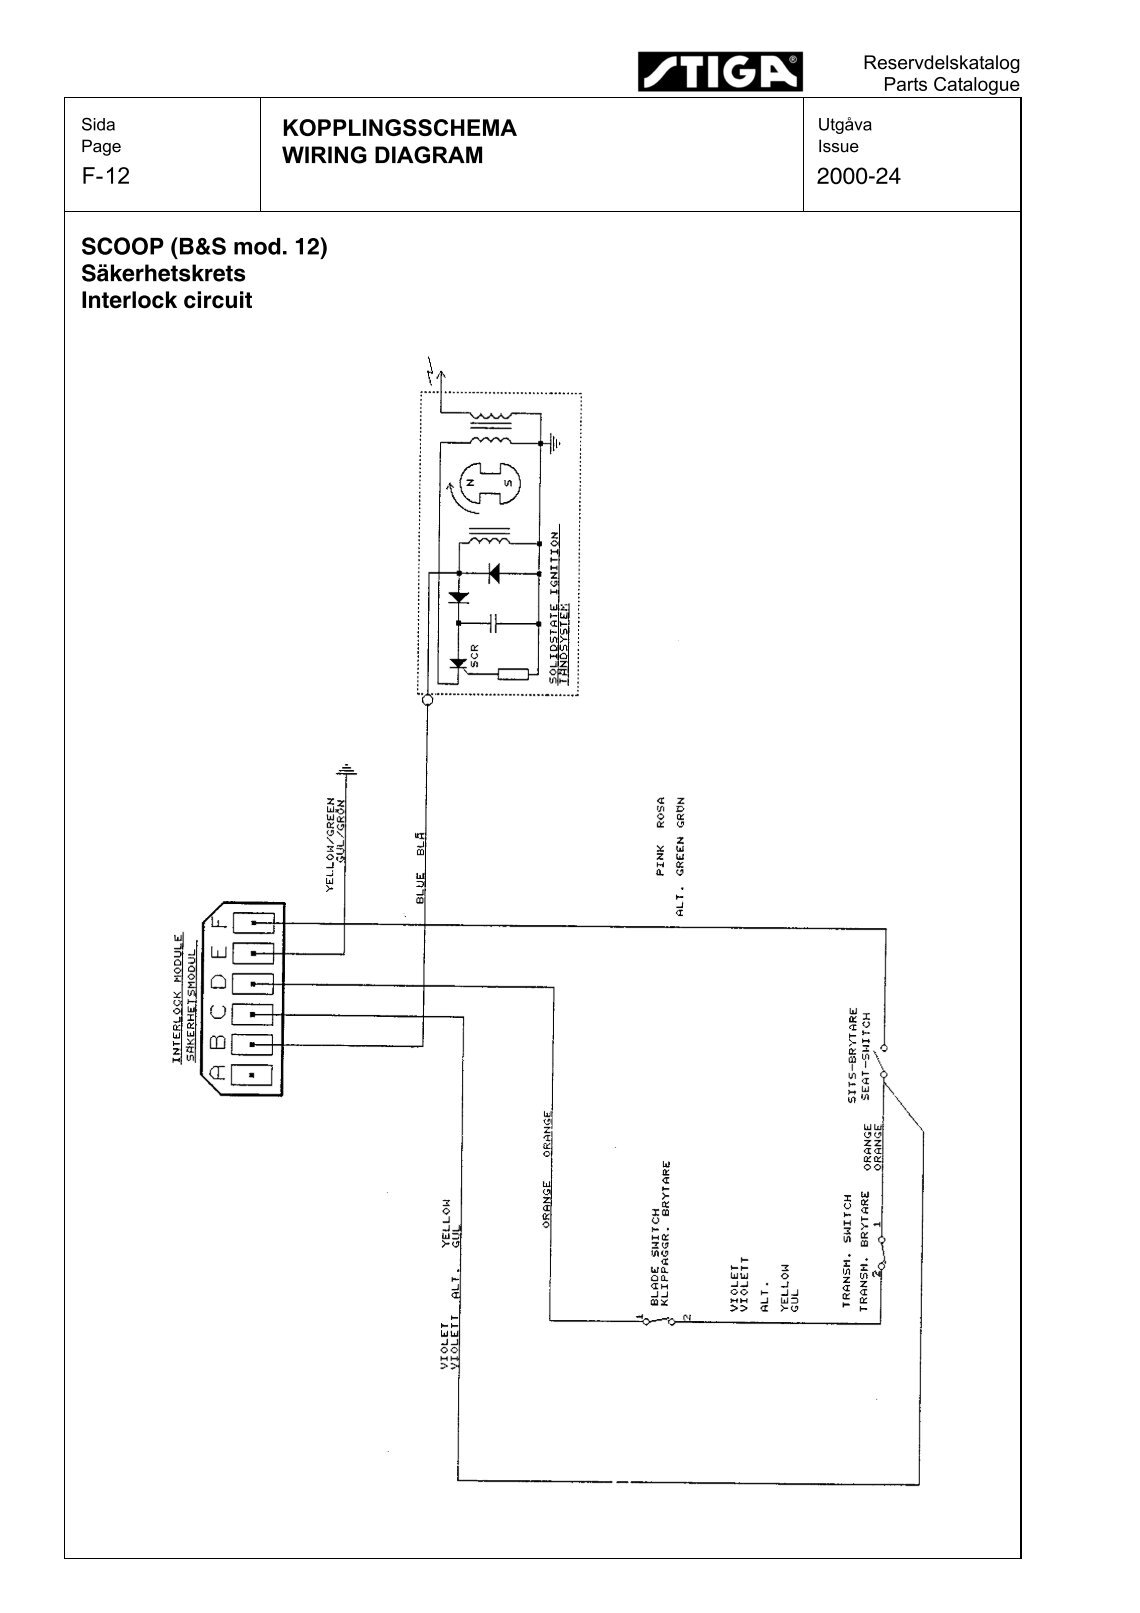 mallory distributor wiring diagram volvo fh voltmaster auto electrical dual point